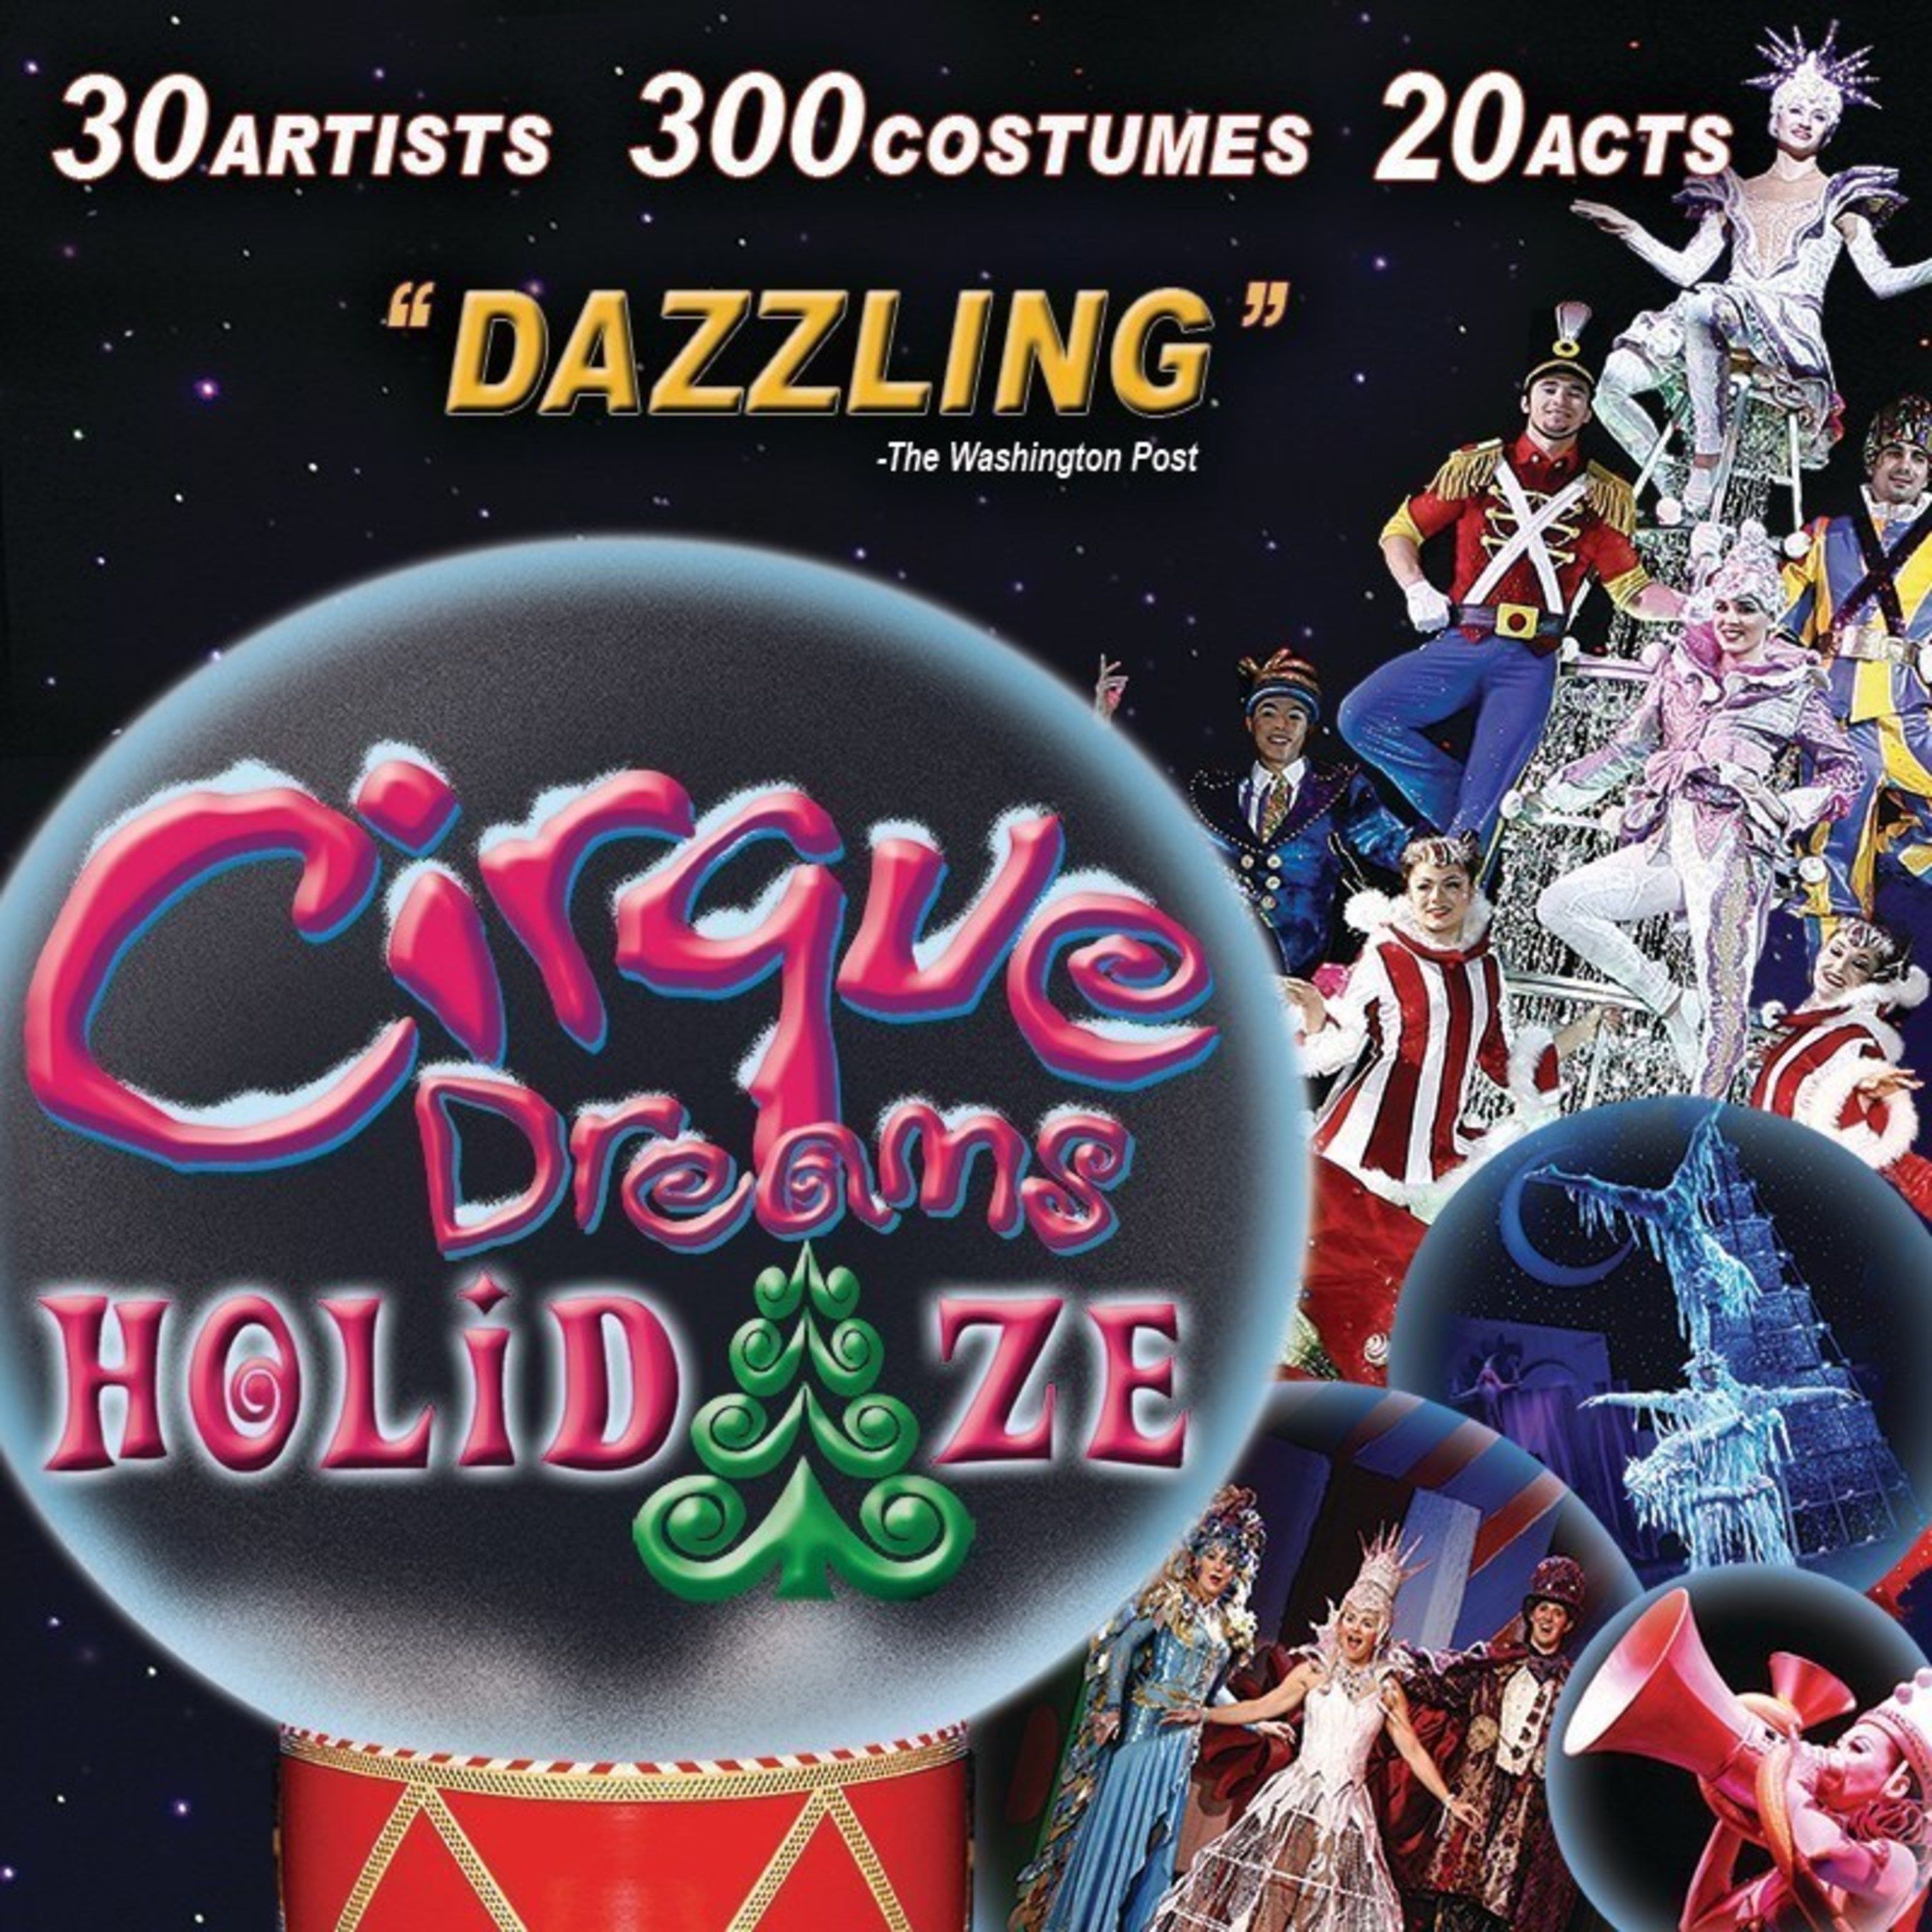 CIRQUE DREAMS HOLIDAZE TOURS & PERFORMS IN OVER 35 U.S. CITIES IN 2015